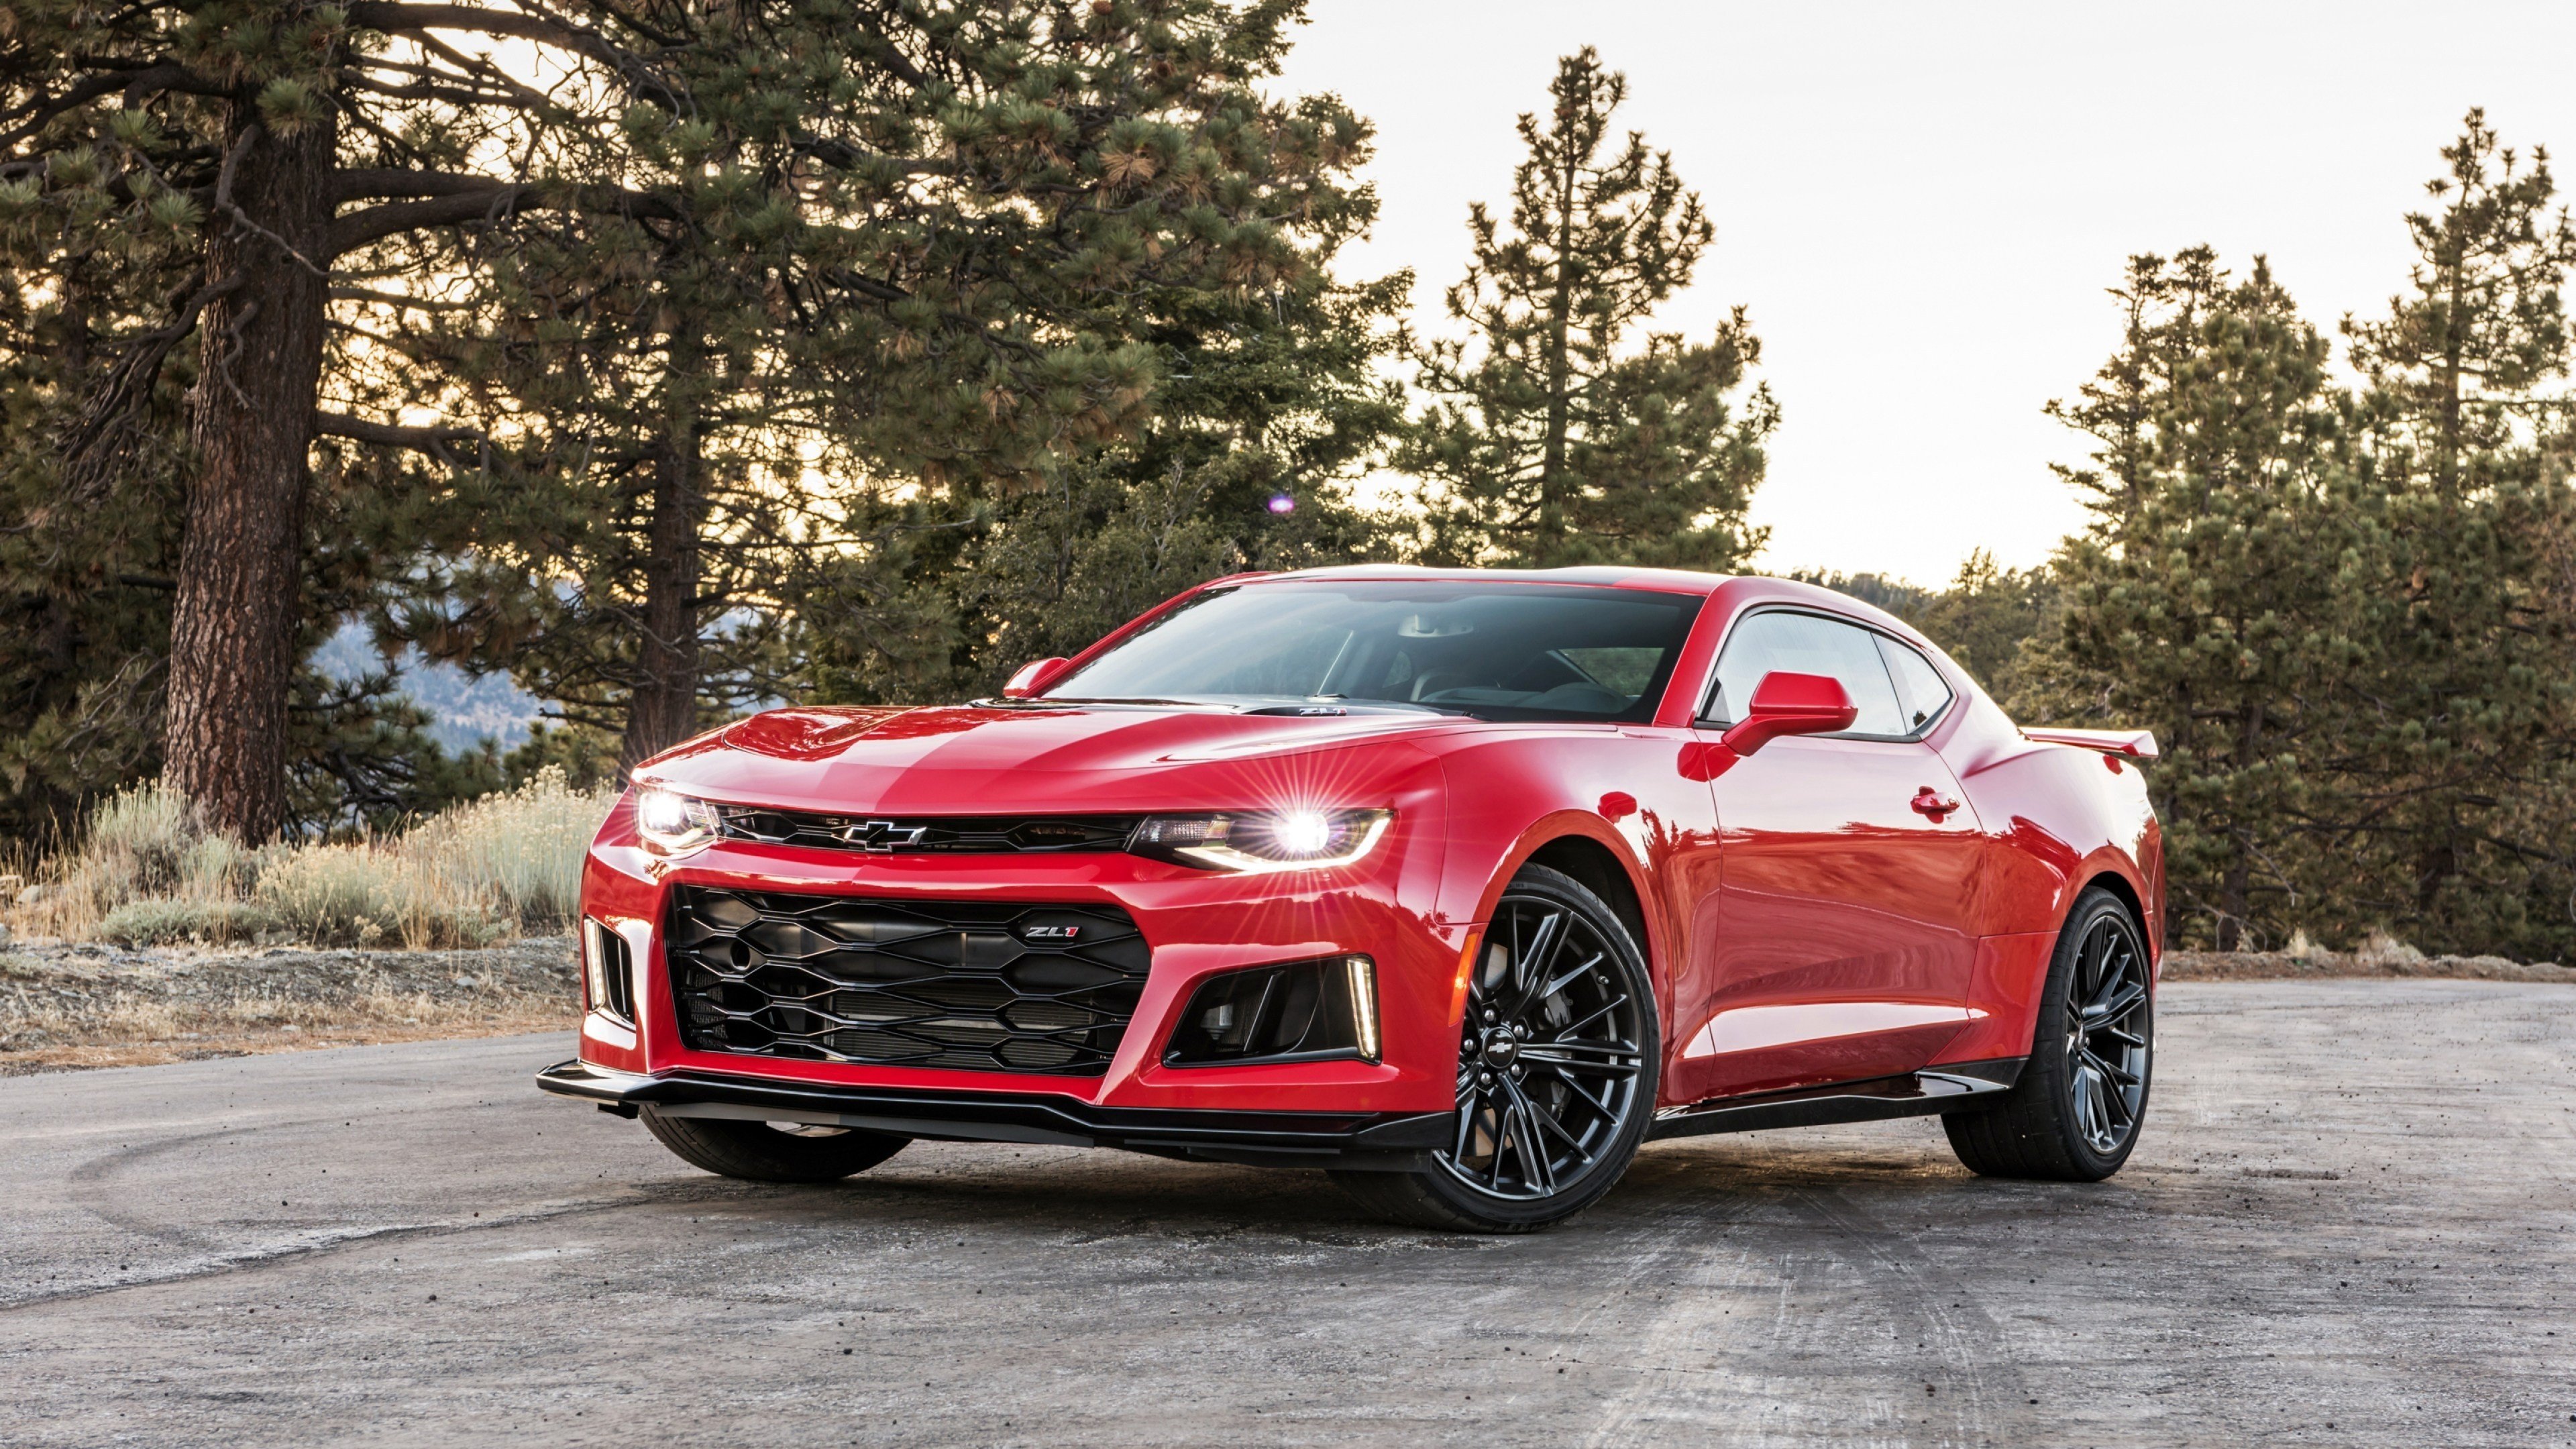 3840x2160 Red Car Chevrolet Camaro Zl1 Against The Forest Wallpapers